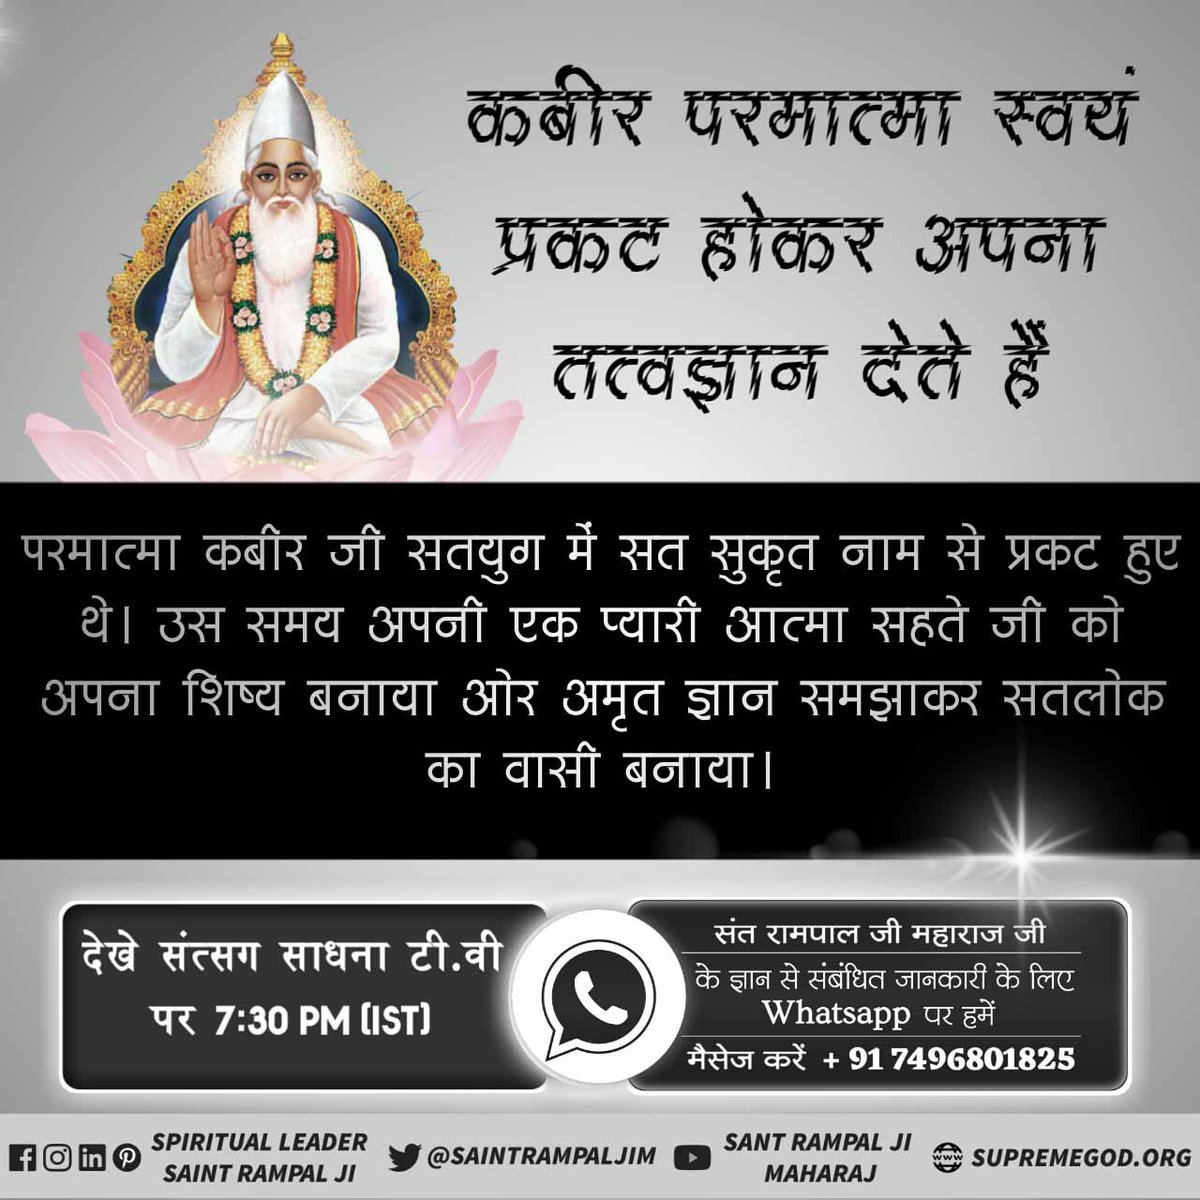 #GodMorningFriday #GodMorningFriday  #FridayThoughts  God by coming in the form a Satguru and by giving us the mantra of true bhakti, sows the seed Of bhakti in our souls. -Saint Rampal Ji Maharaj Visit Satlok Ashram YouTube Channel  @SatlokChannel